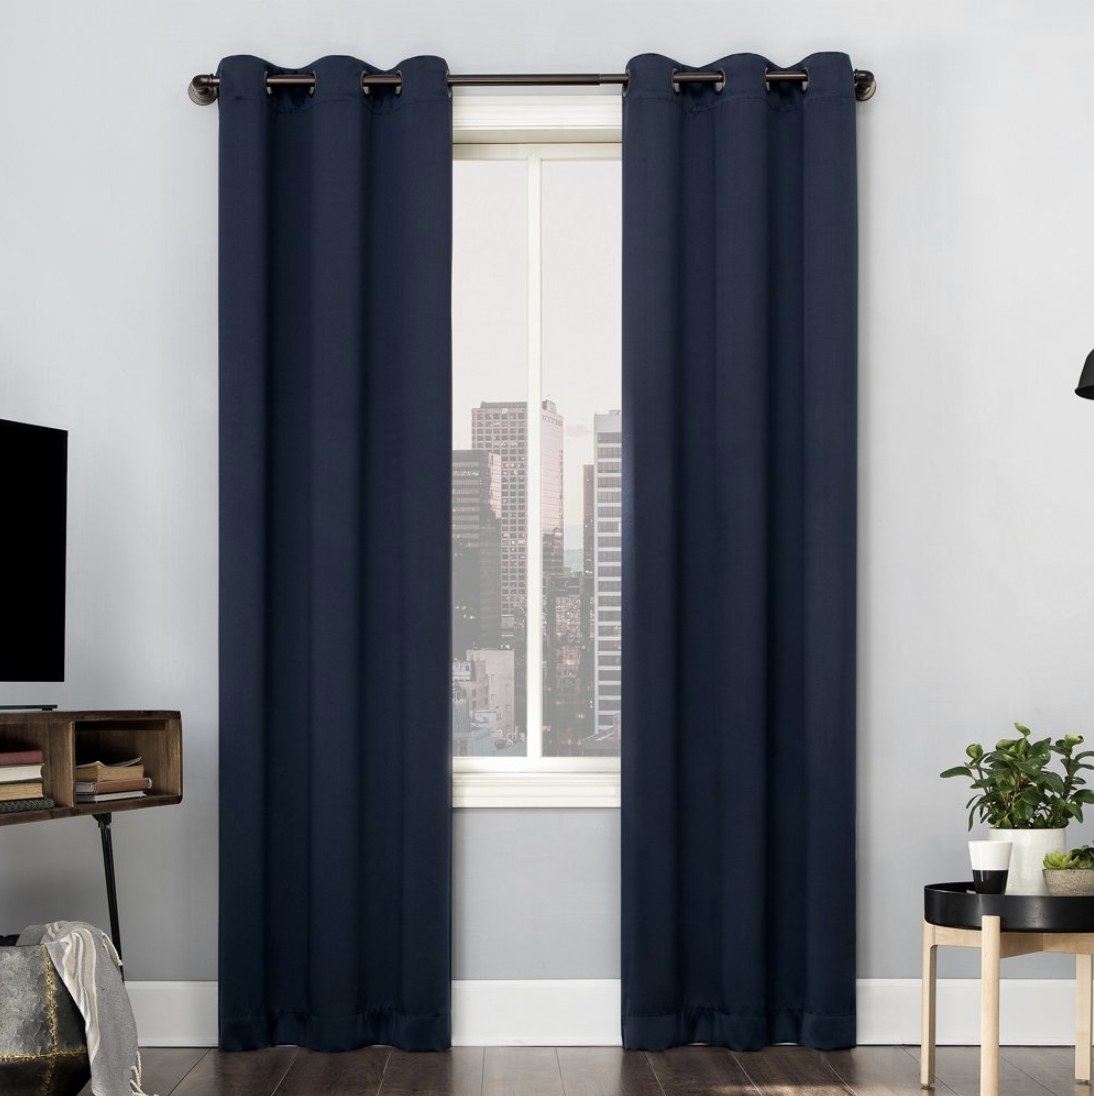 A pair of navy blue blackout curtain panels hung in front of a window in a living room